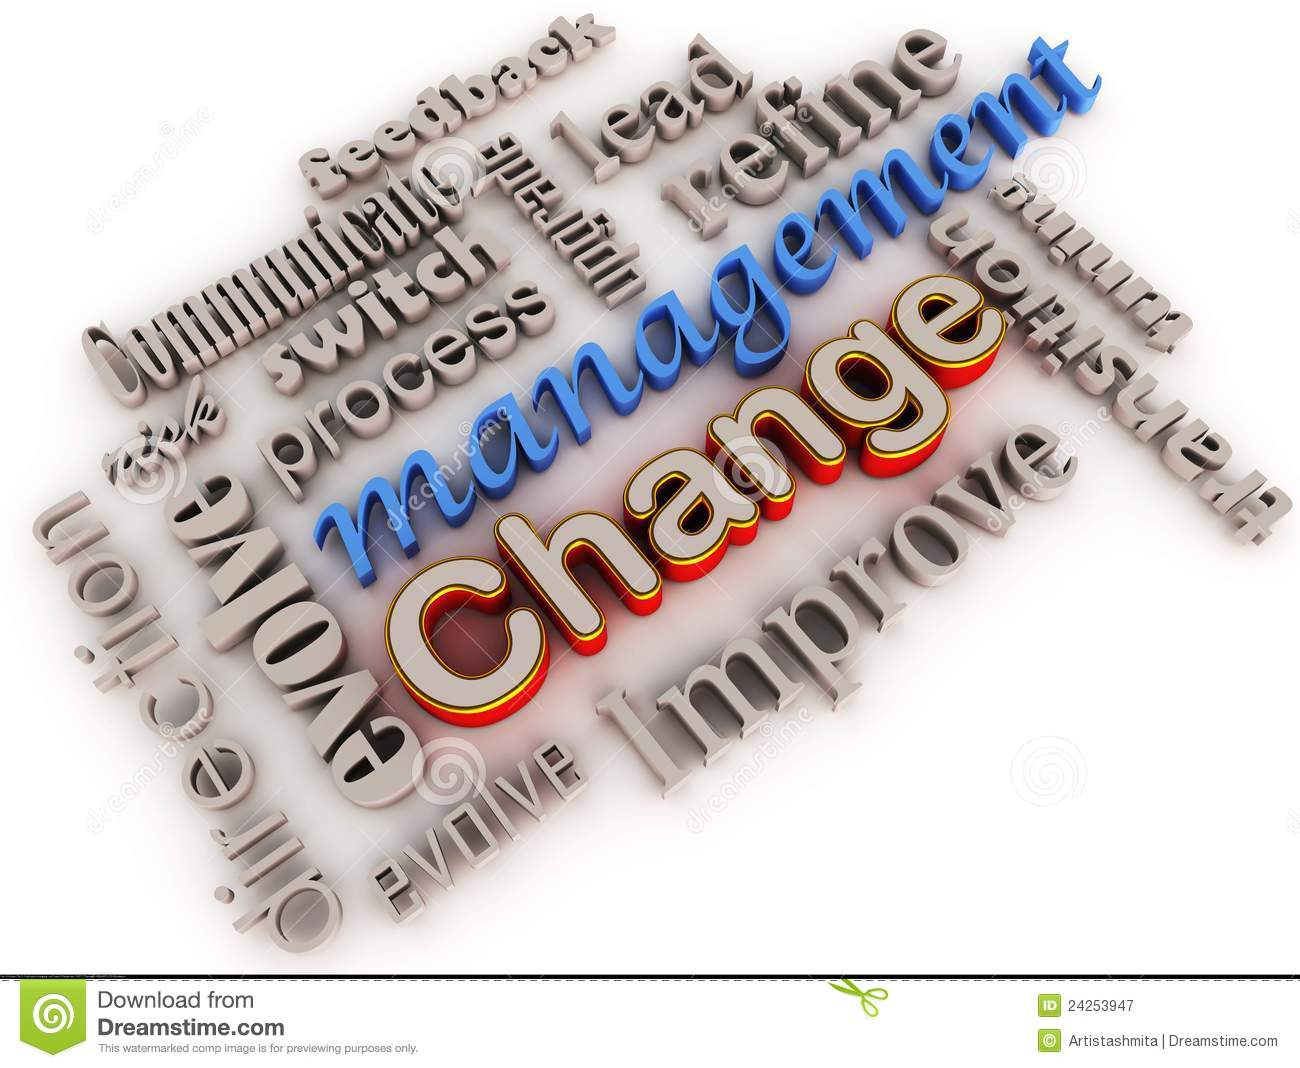 leadership and change management a case The case briefly describes the 112-year history of the organization and focuses particularly on the changes wrought by its new leader david yarnold who was brought in.